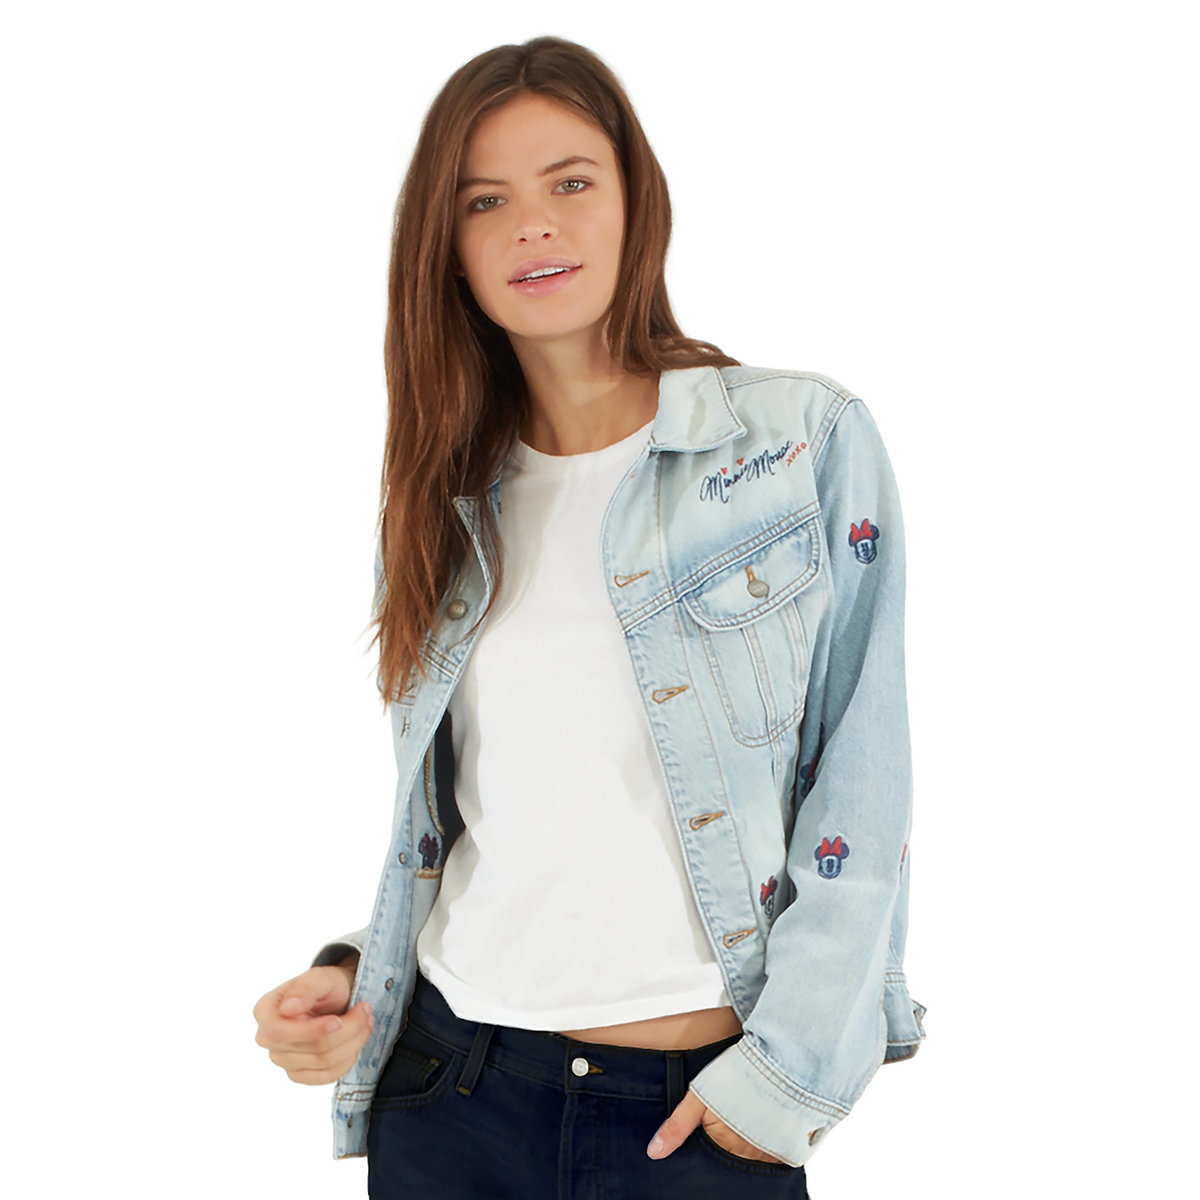 Minnie Mouse Denim Jacket at Disney Shop's Friends and Family Sale